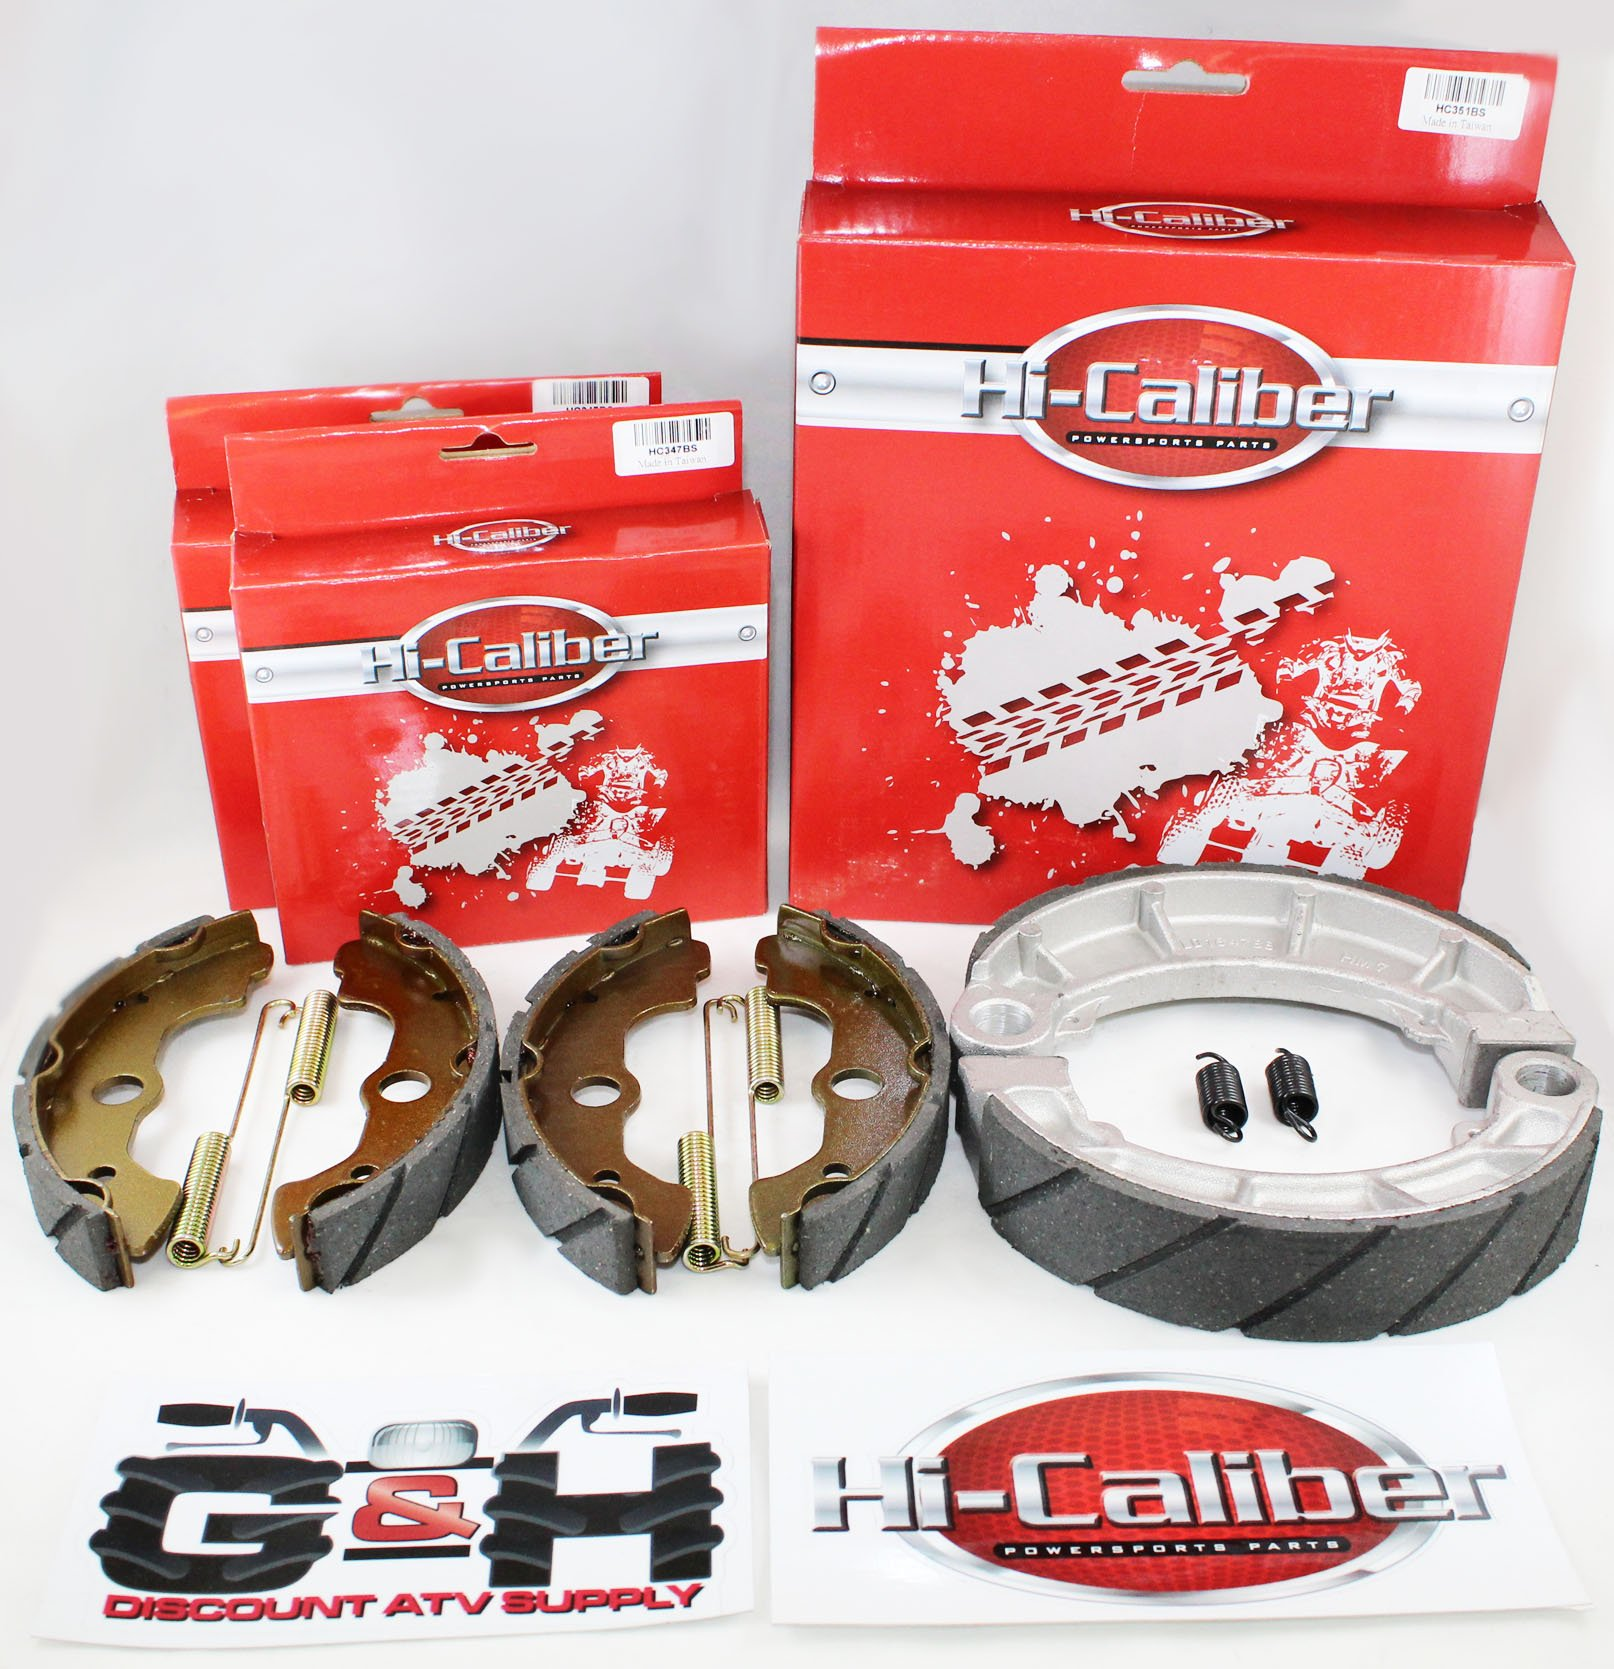 WATER GROOVED Front & Rear Brake Shoes & Springs SET for the Honda 2000-2006 TRX 350 Rancher ATV by Hi-Caliber Powersports Parts (Image #1)